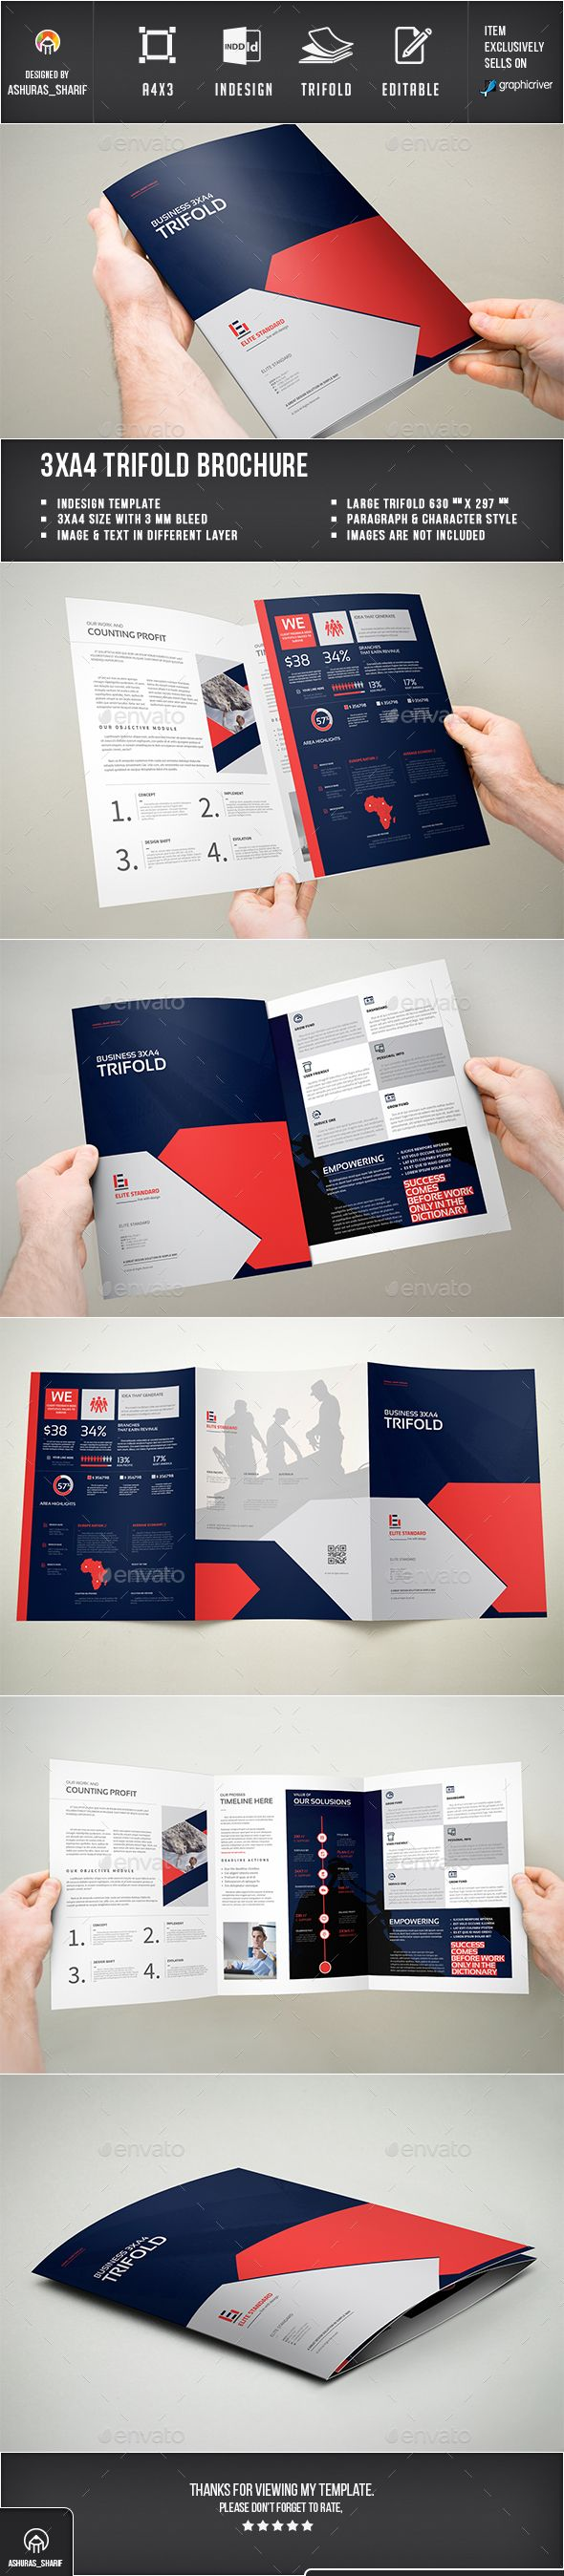 Trifold Brochure Template InDesign INDD. Download here: http://graphicriver.net/item/trifold-brochure/16061827?ref=ksioks